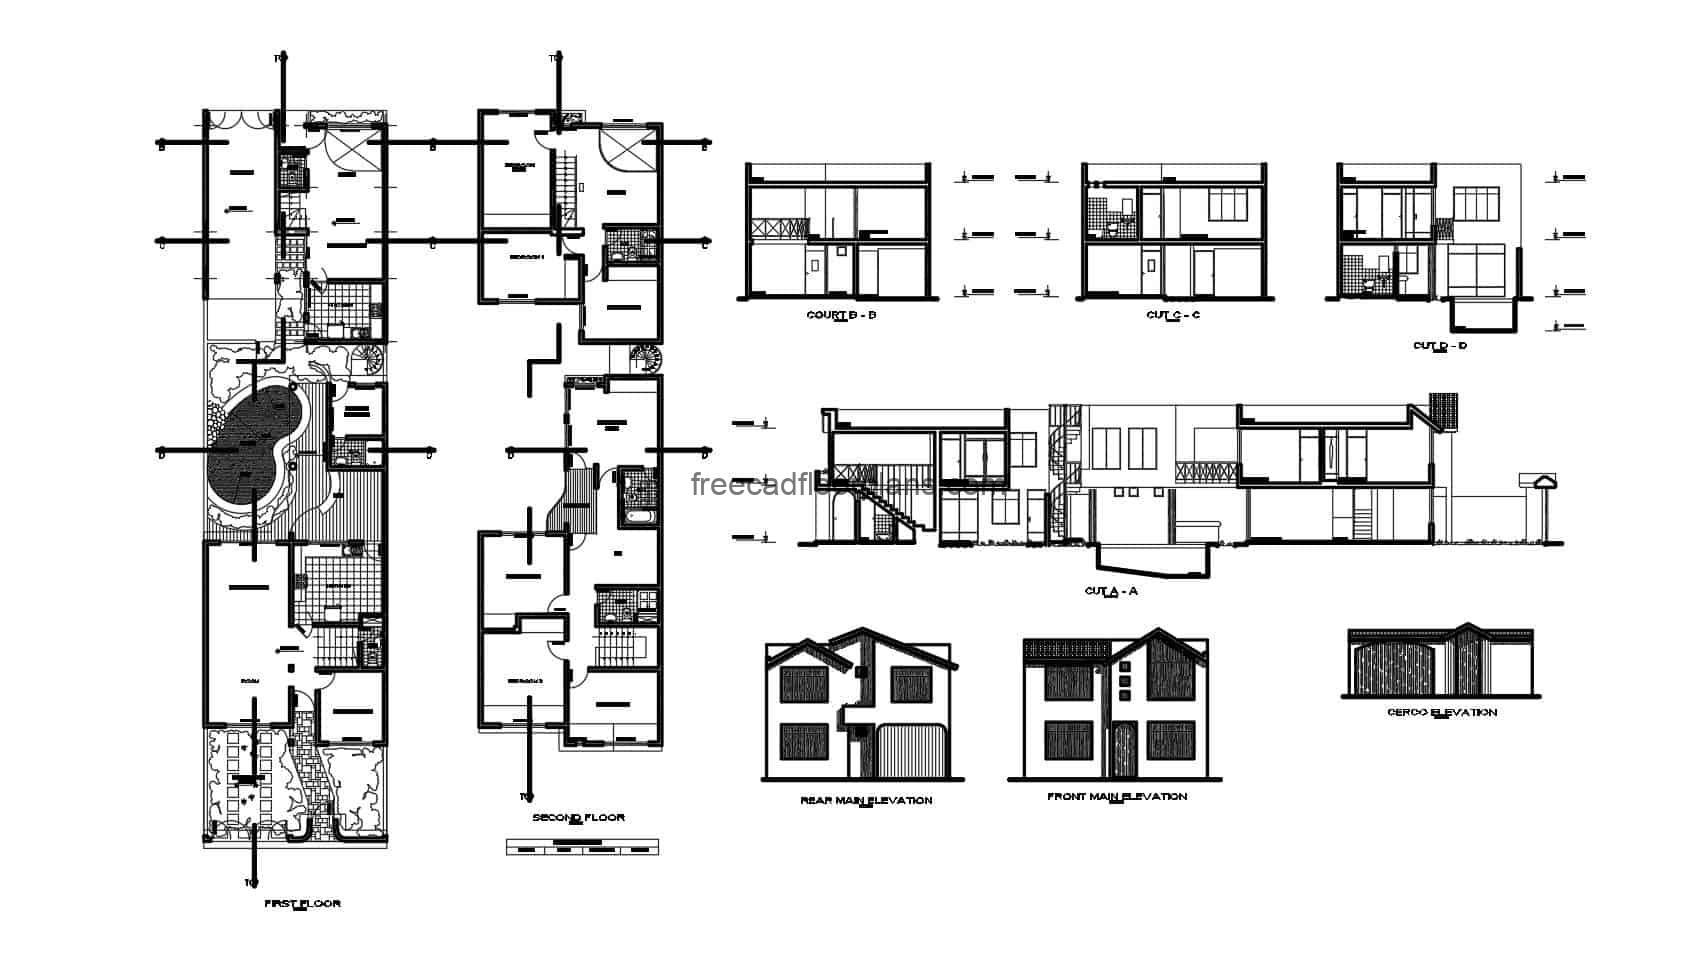 Architectural project of an elongated house with plans distributed on two levels, elongated design in DWG with blocks and details of the interior spaces